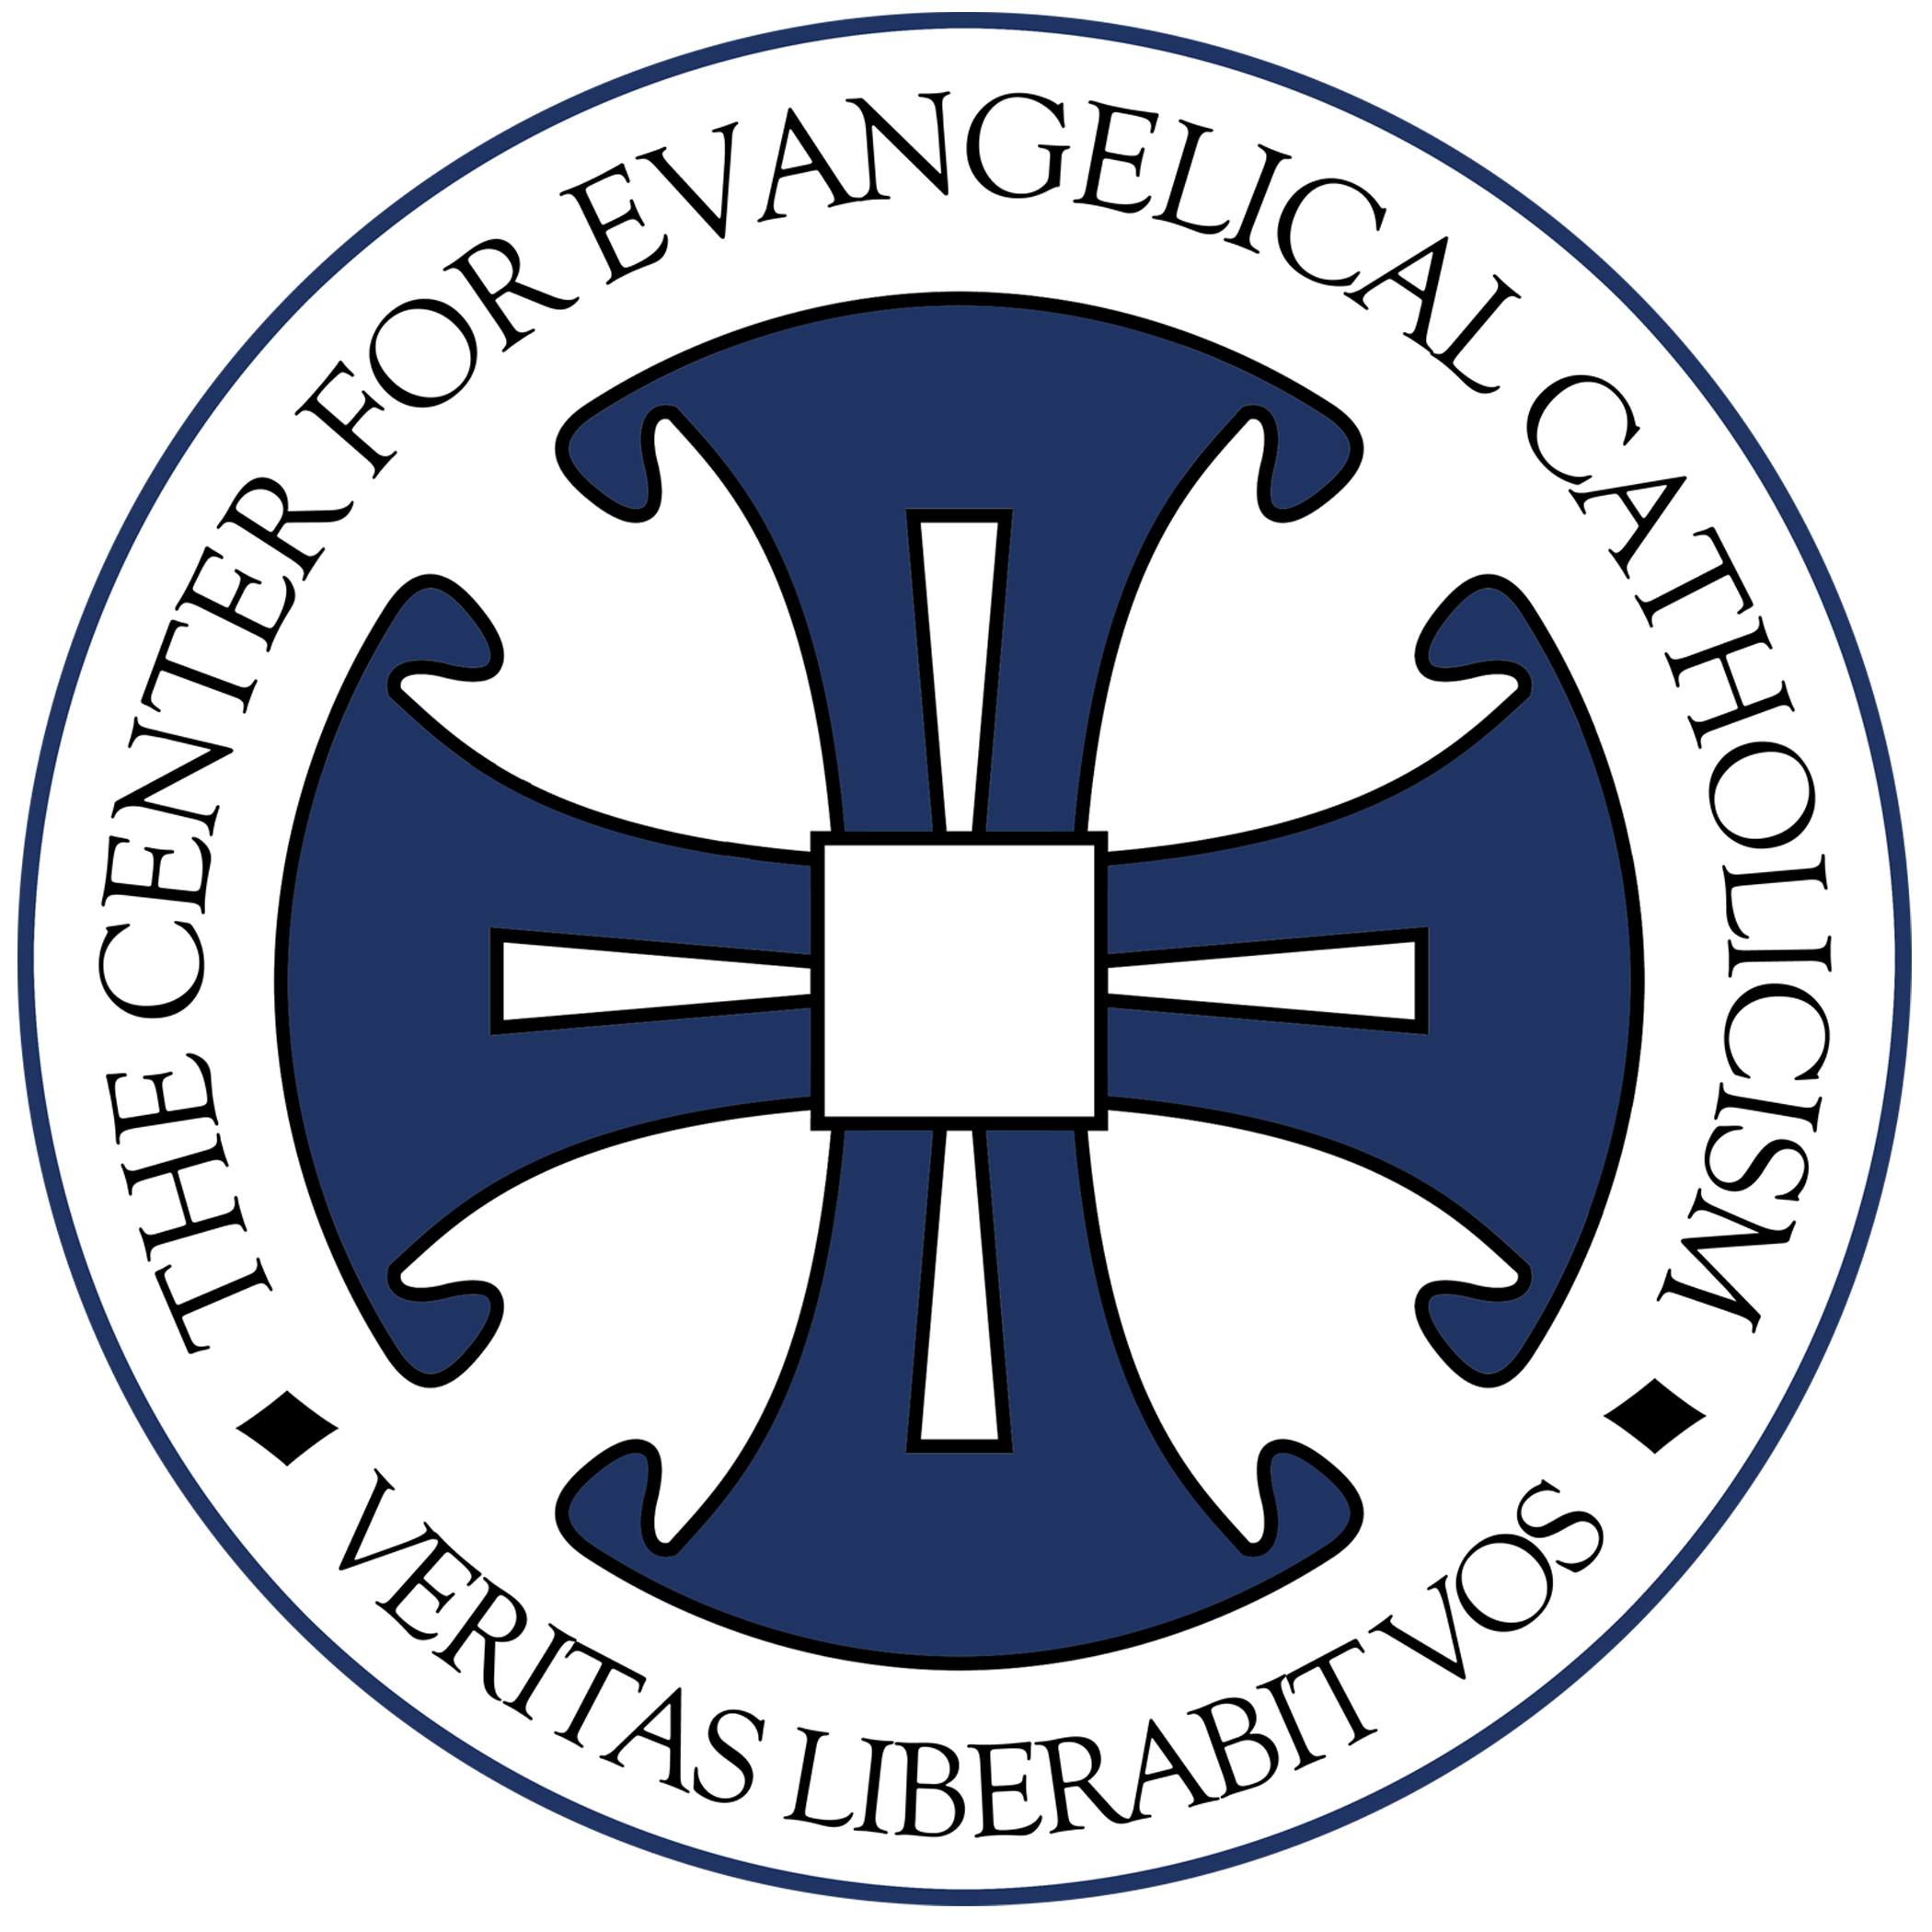 Center for Evangelical Catholicism